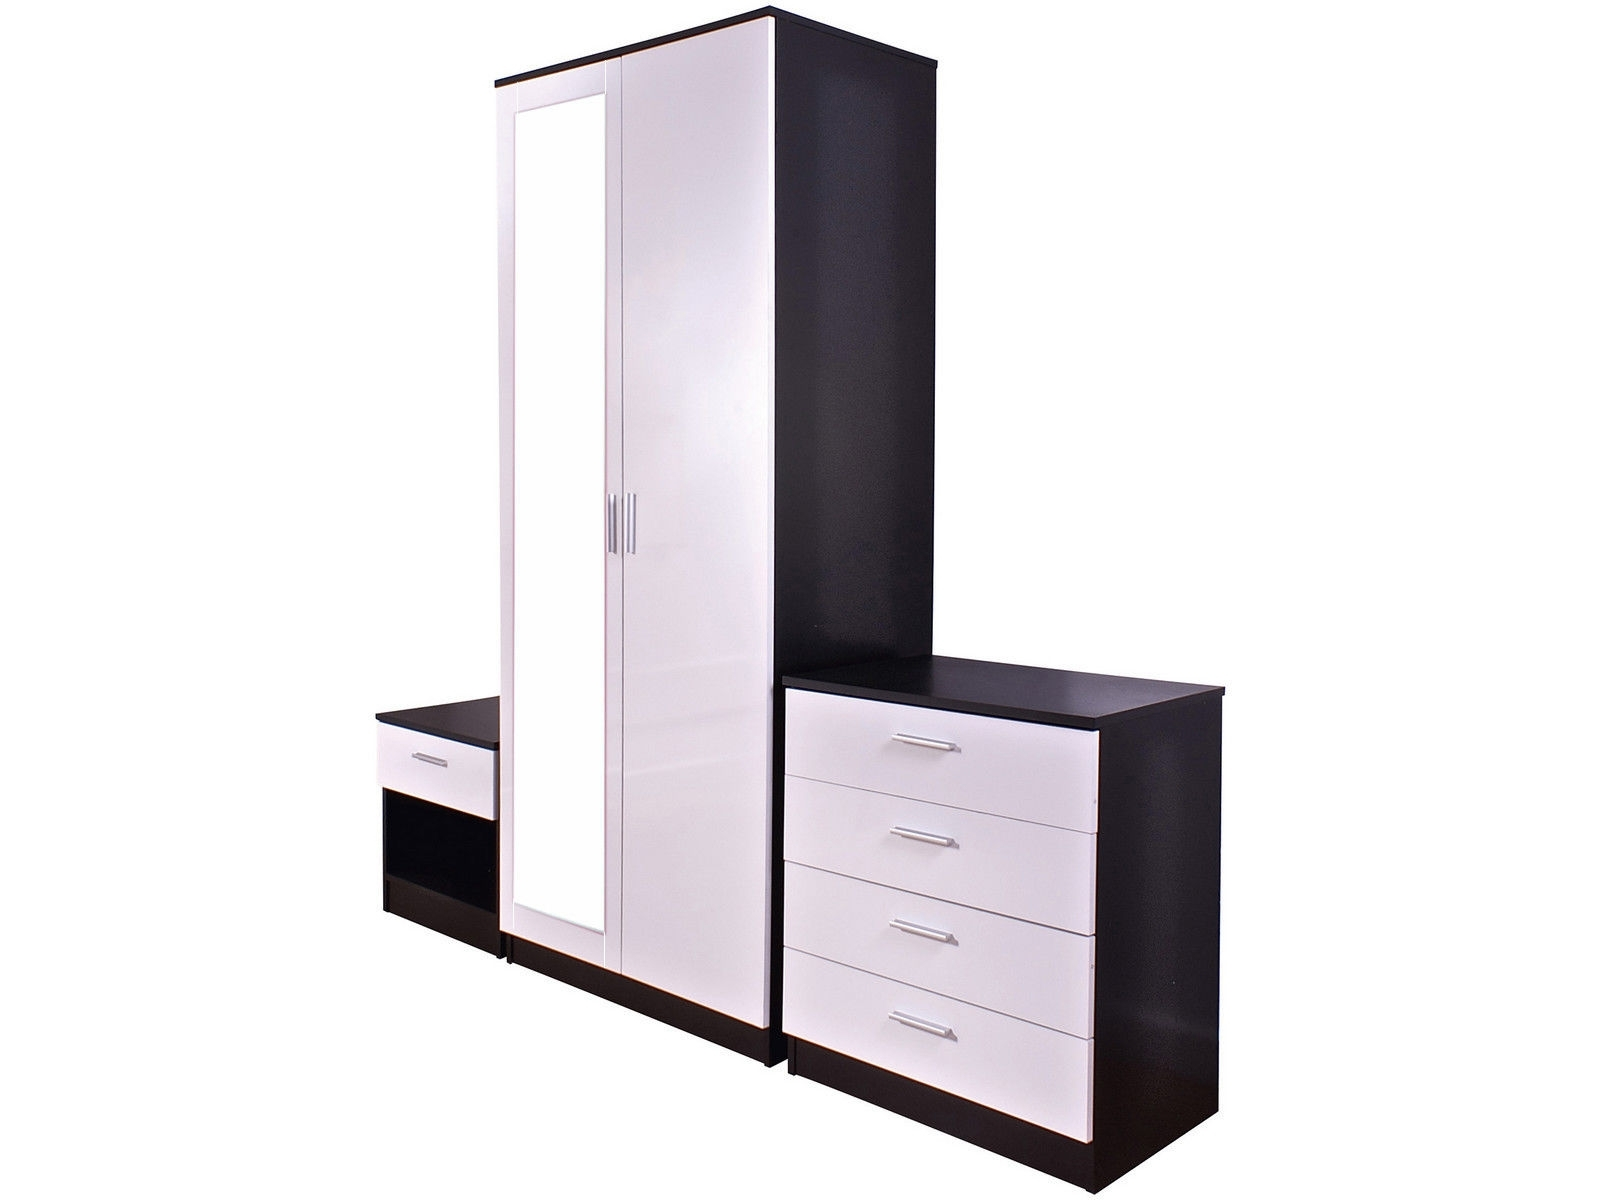 Black And White Wardrobes Set For Best And Newest White High Gloss Sliding Wardrobe Doors Black Wardrobes That Can (View 5 of 15)